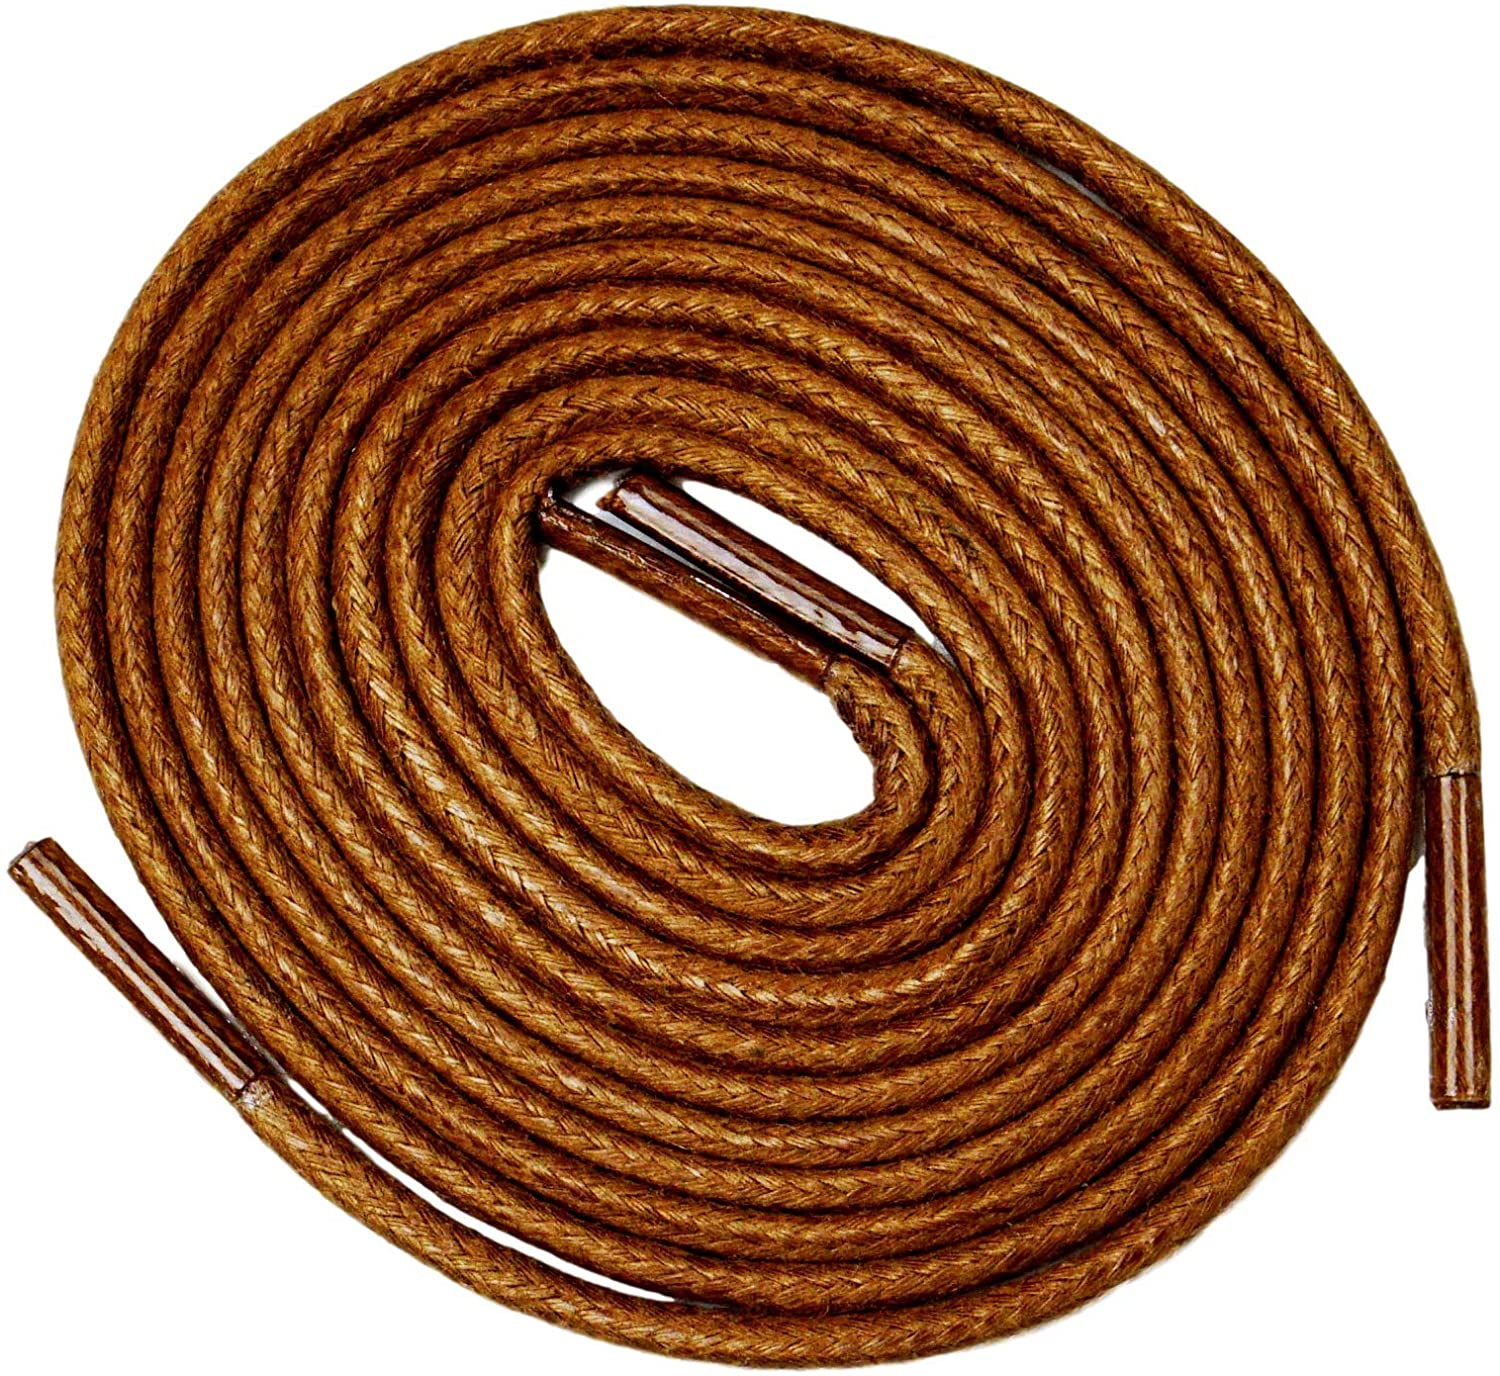 Ortholaces [2 Pairs] Waxed Round Oxford Shoe Laces for Dress Shoes, for Men-Shoe Strings, Tan